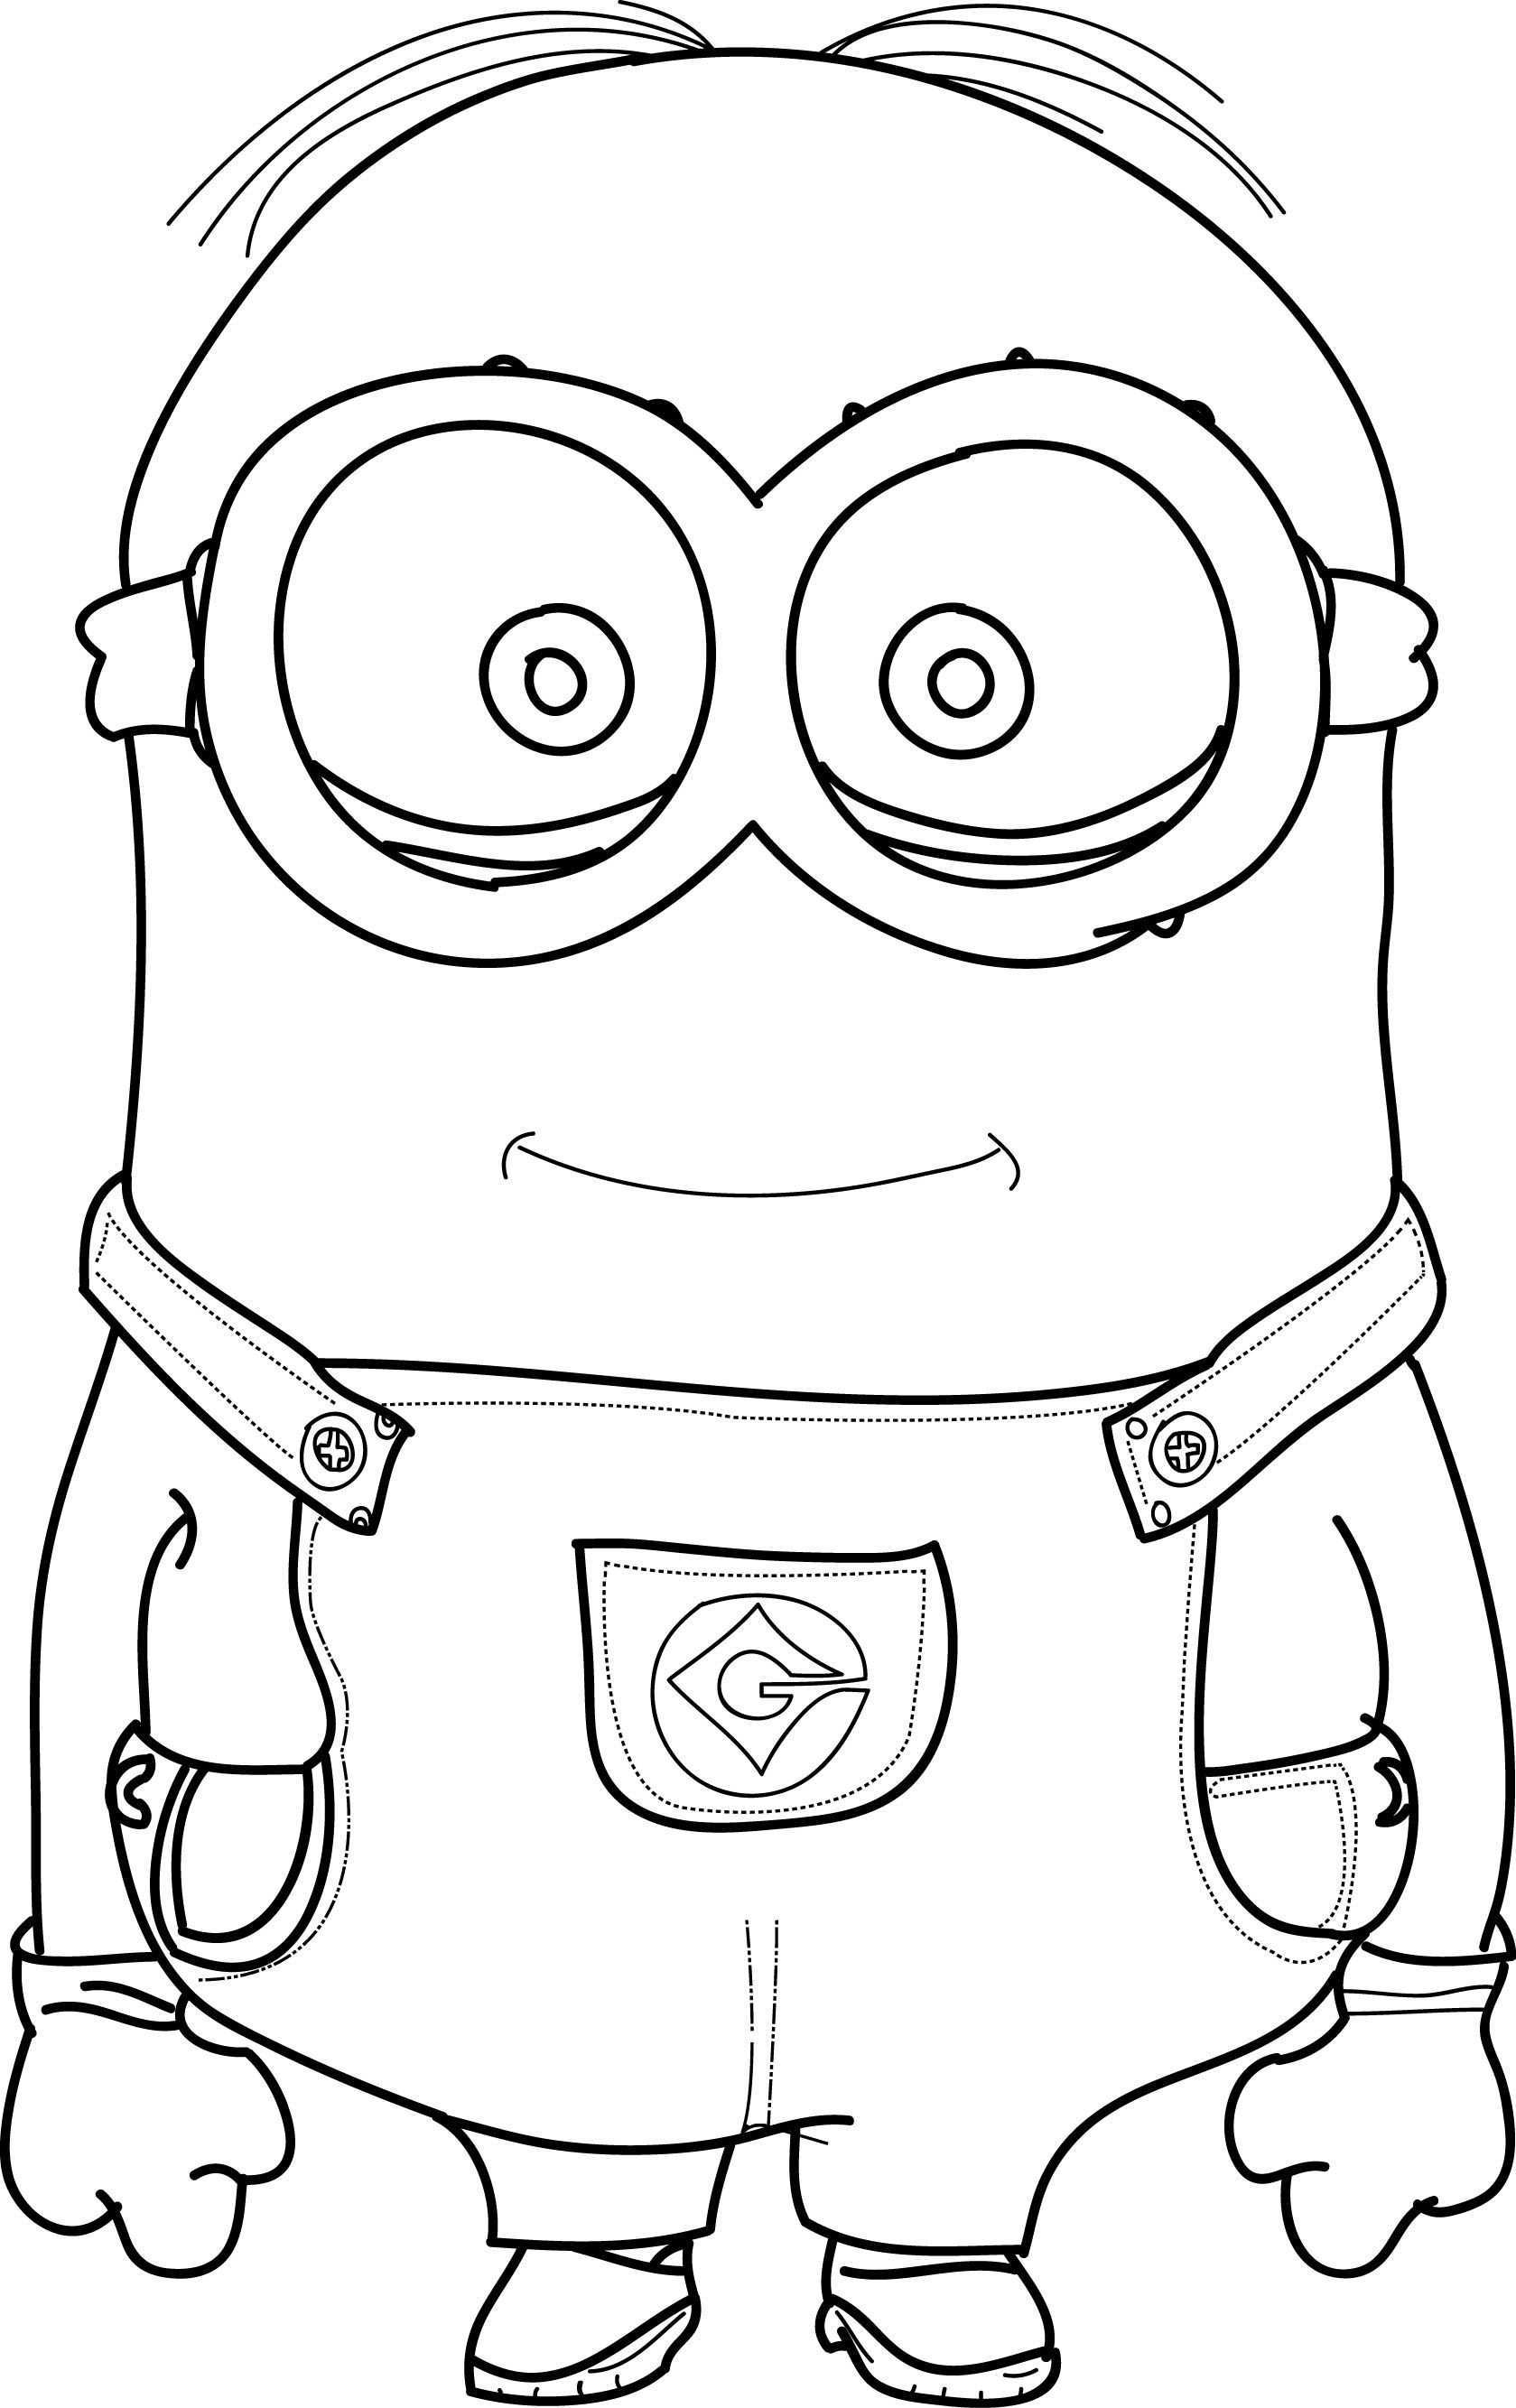 Minions Coloring Pages Wecoloringpage Minions Coloring Pages Cool Coloring Pages Disney Coloring Pages